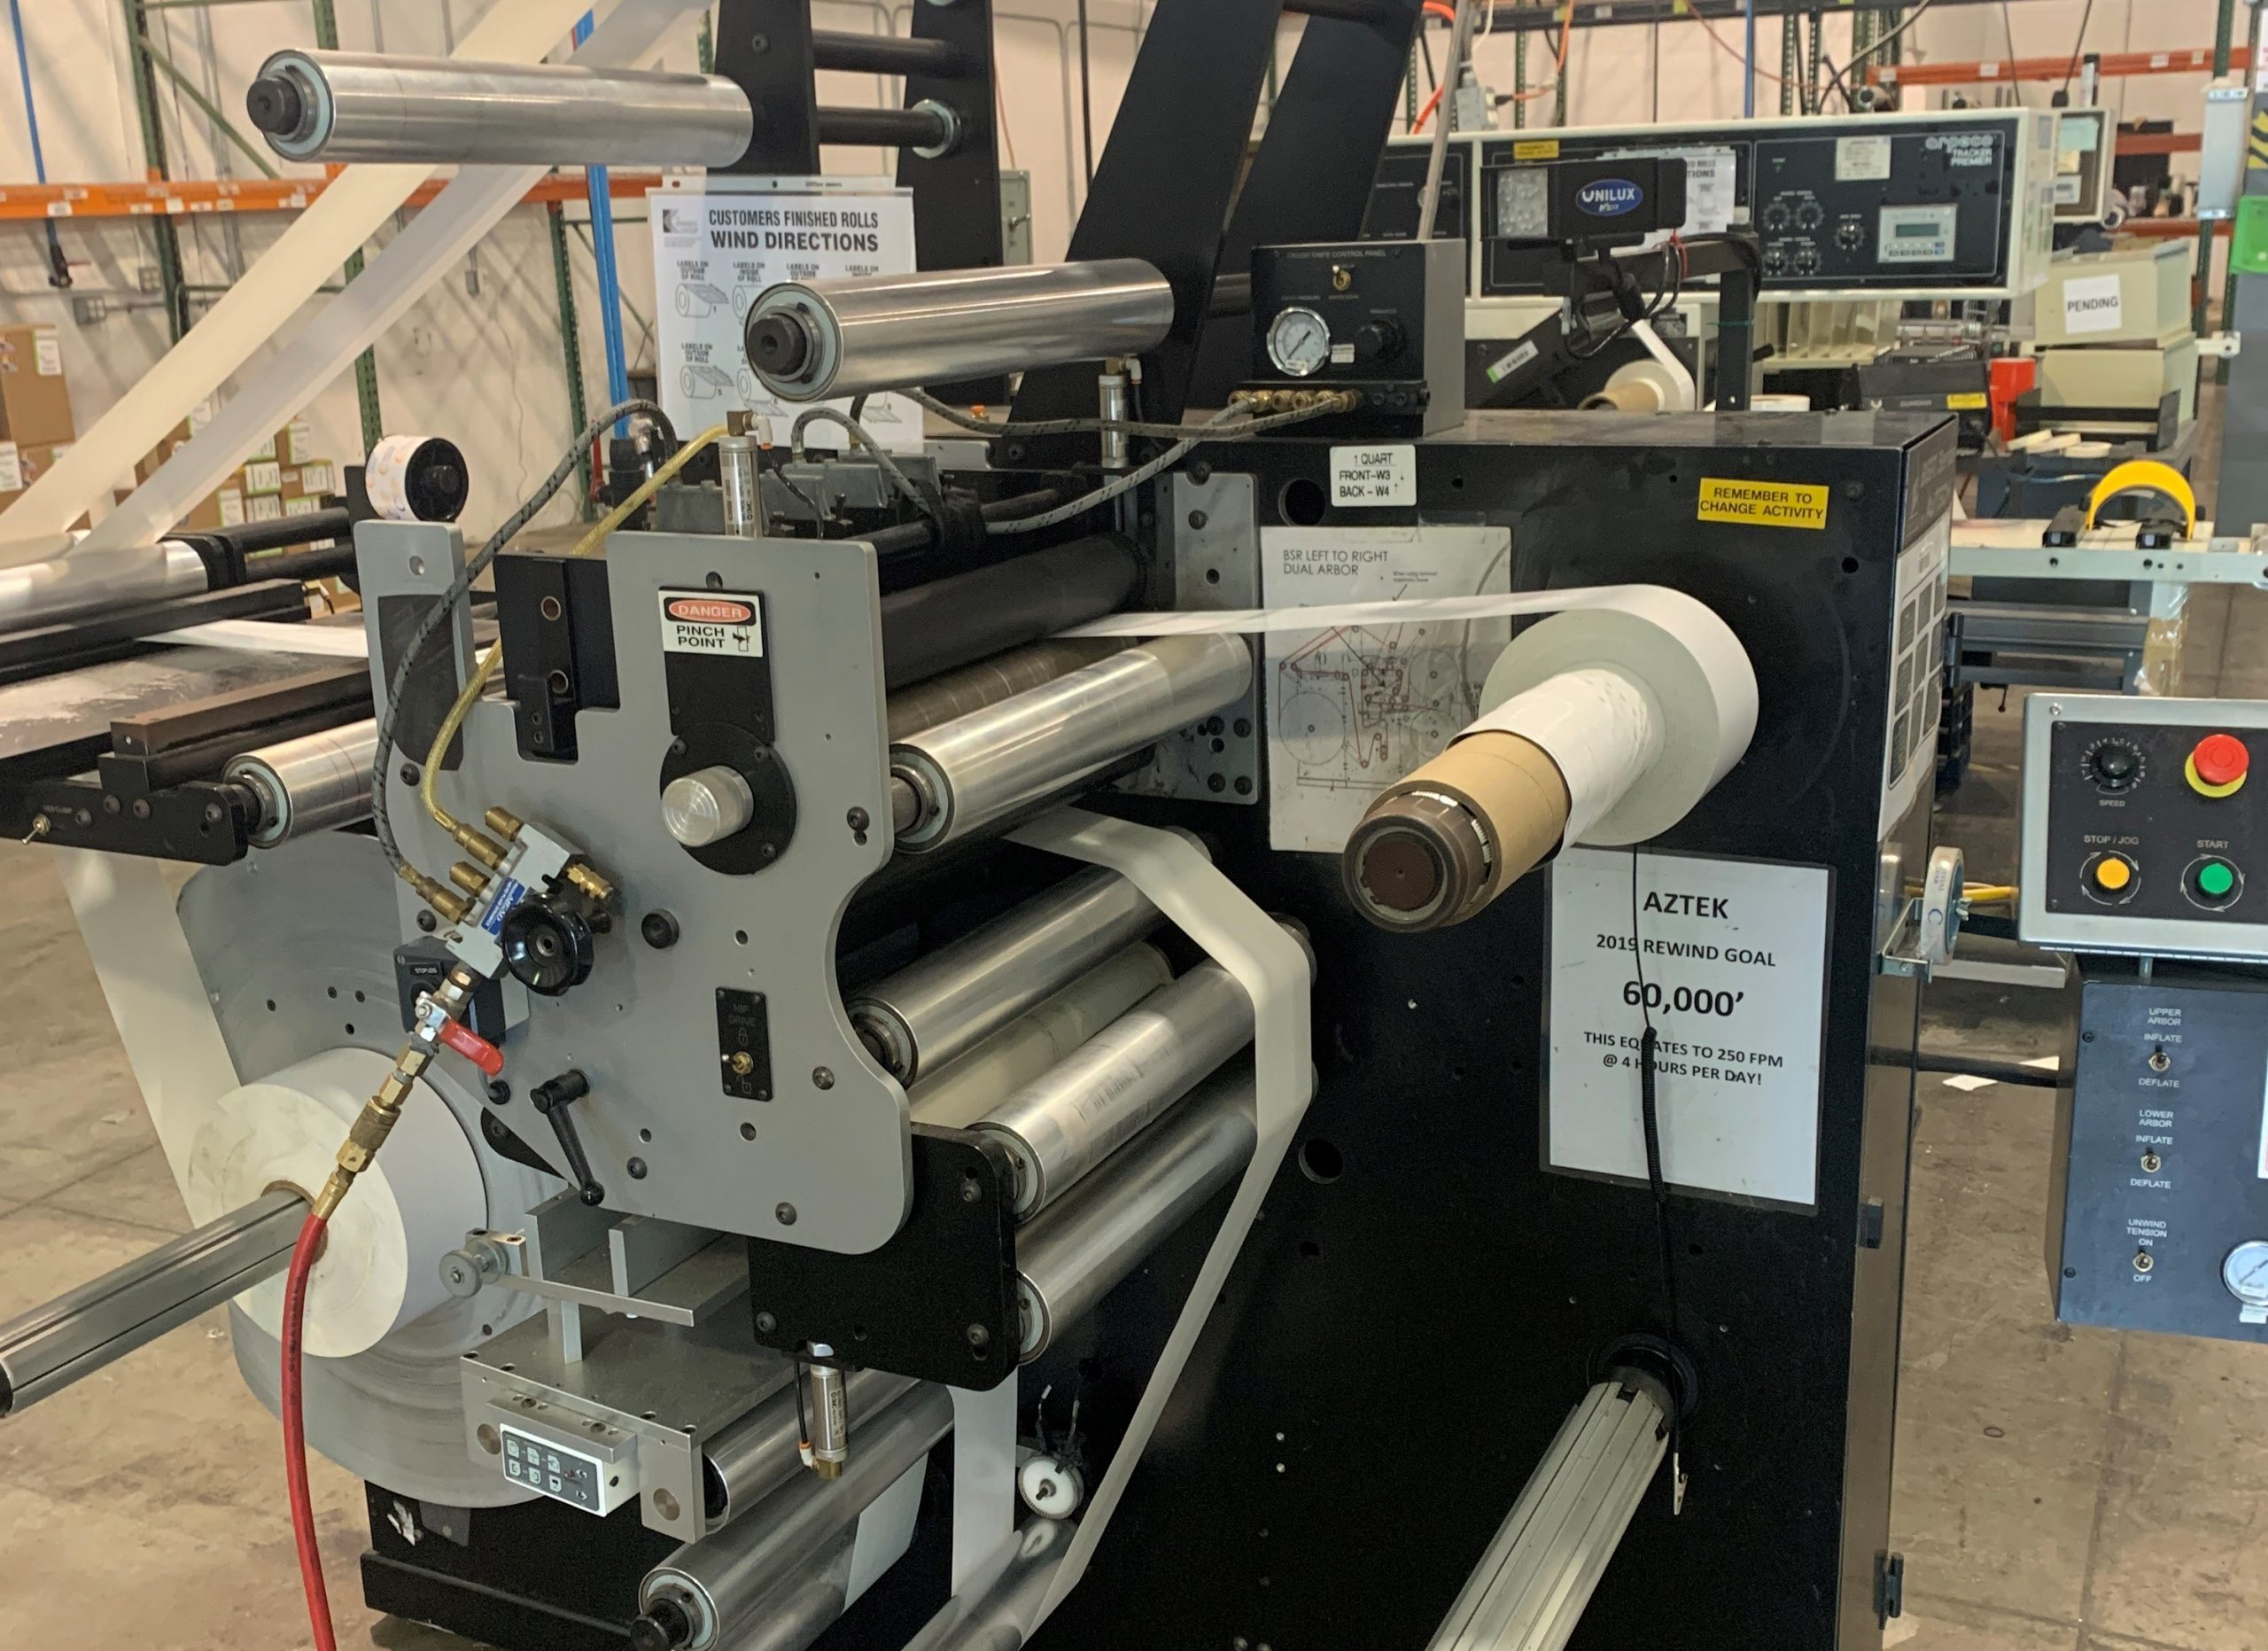 Aztech BSR4018 - Used Flexo Printing Presses and Used Flexographic Equipment-0